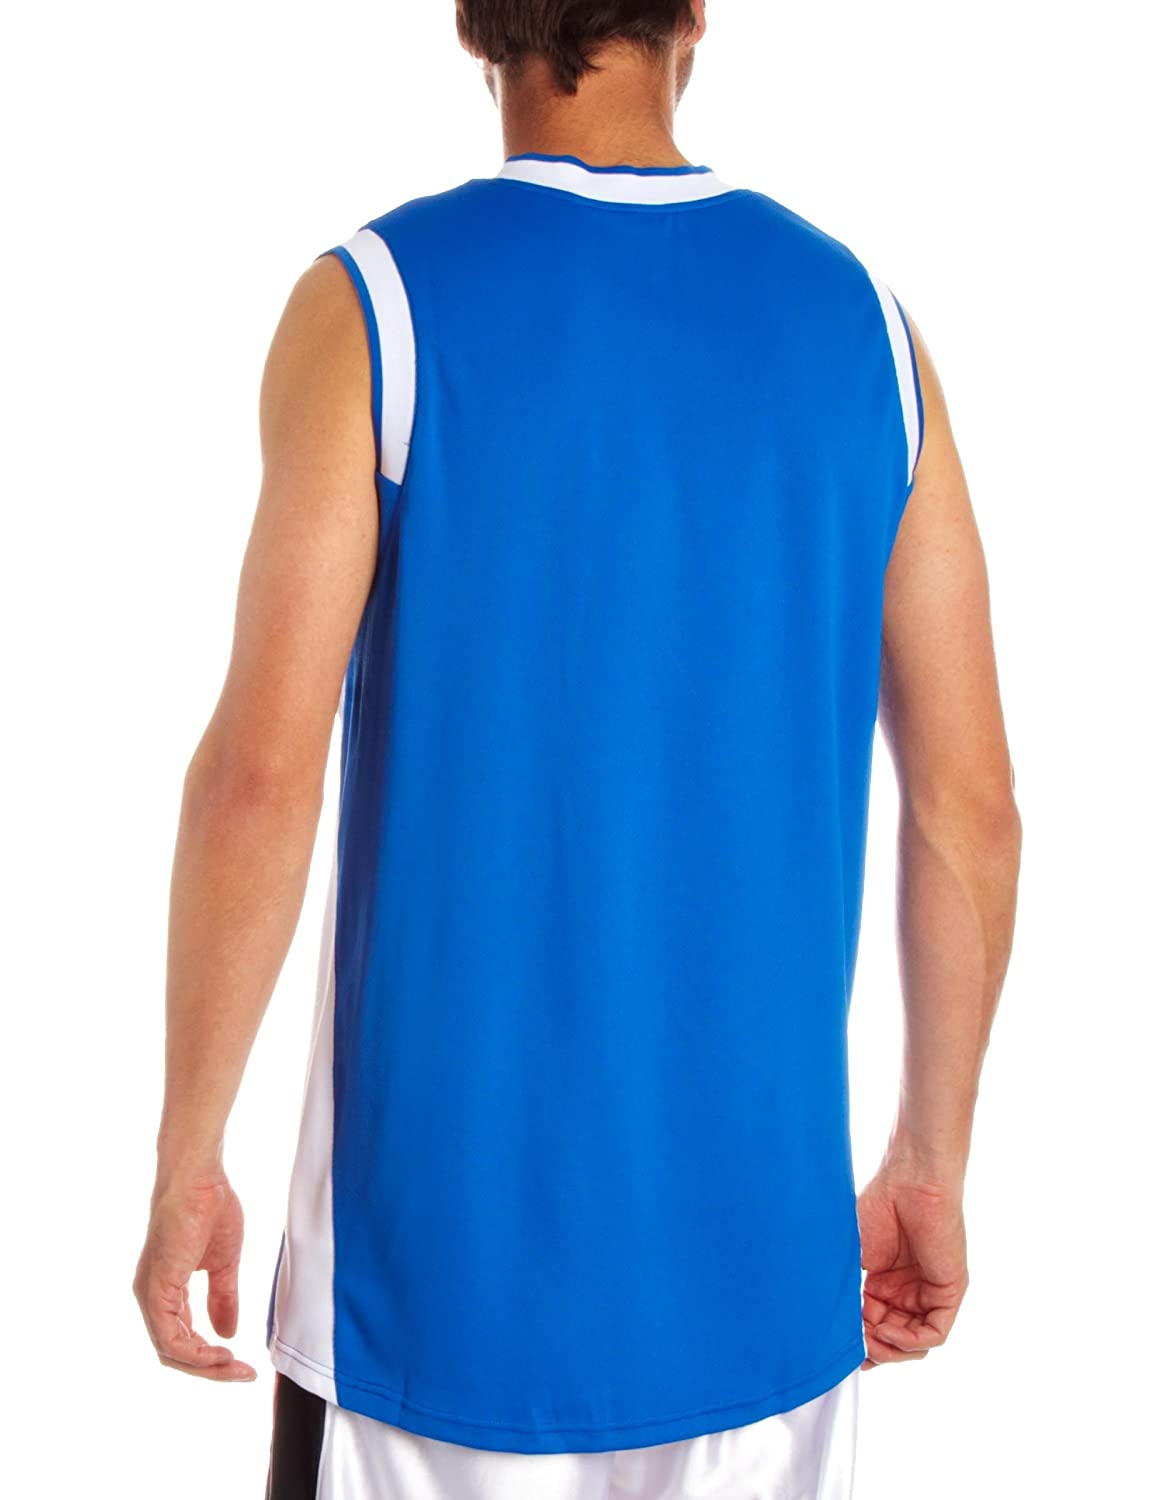 Nike Mens Dri Fit SLAM II TANK Sleeveless BSKTBLL Vest Top Jersey Royal Blue